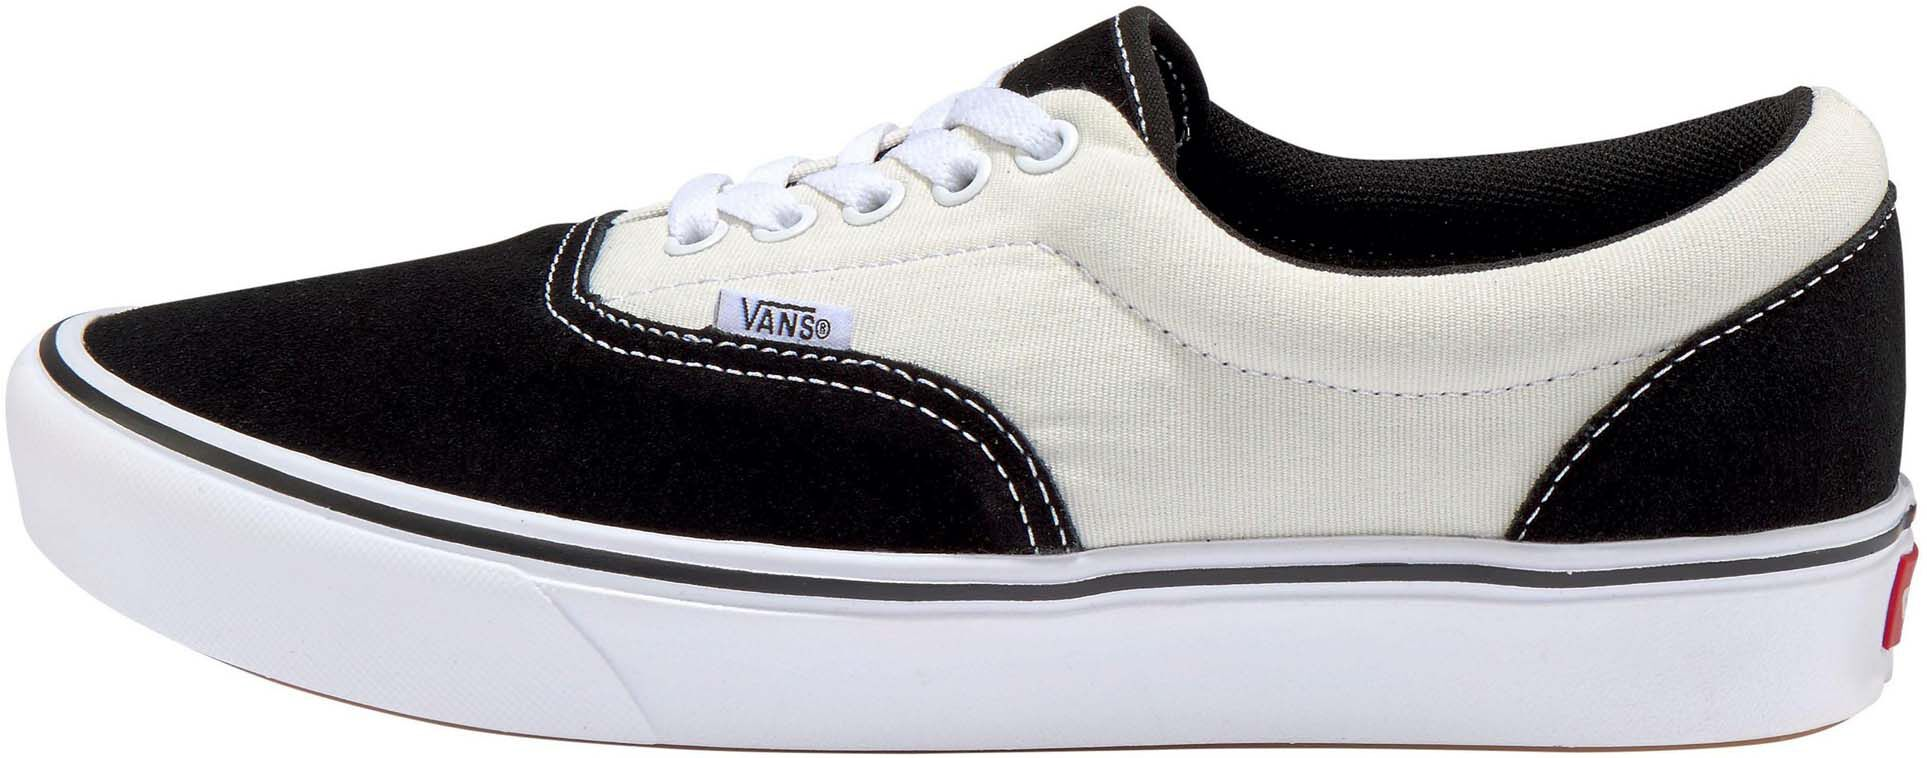 Vans Authentic Wit The Athlete's Foot